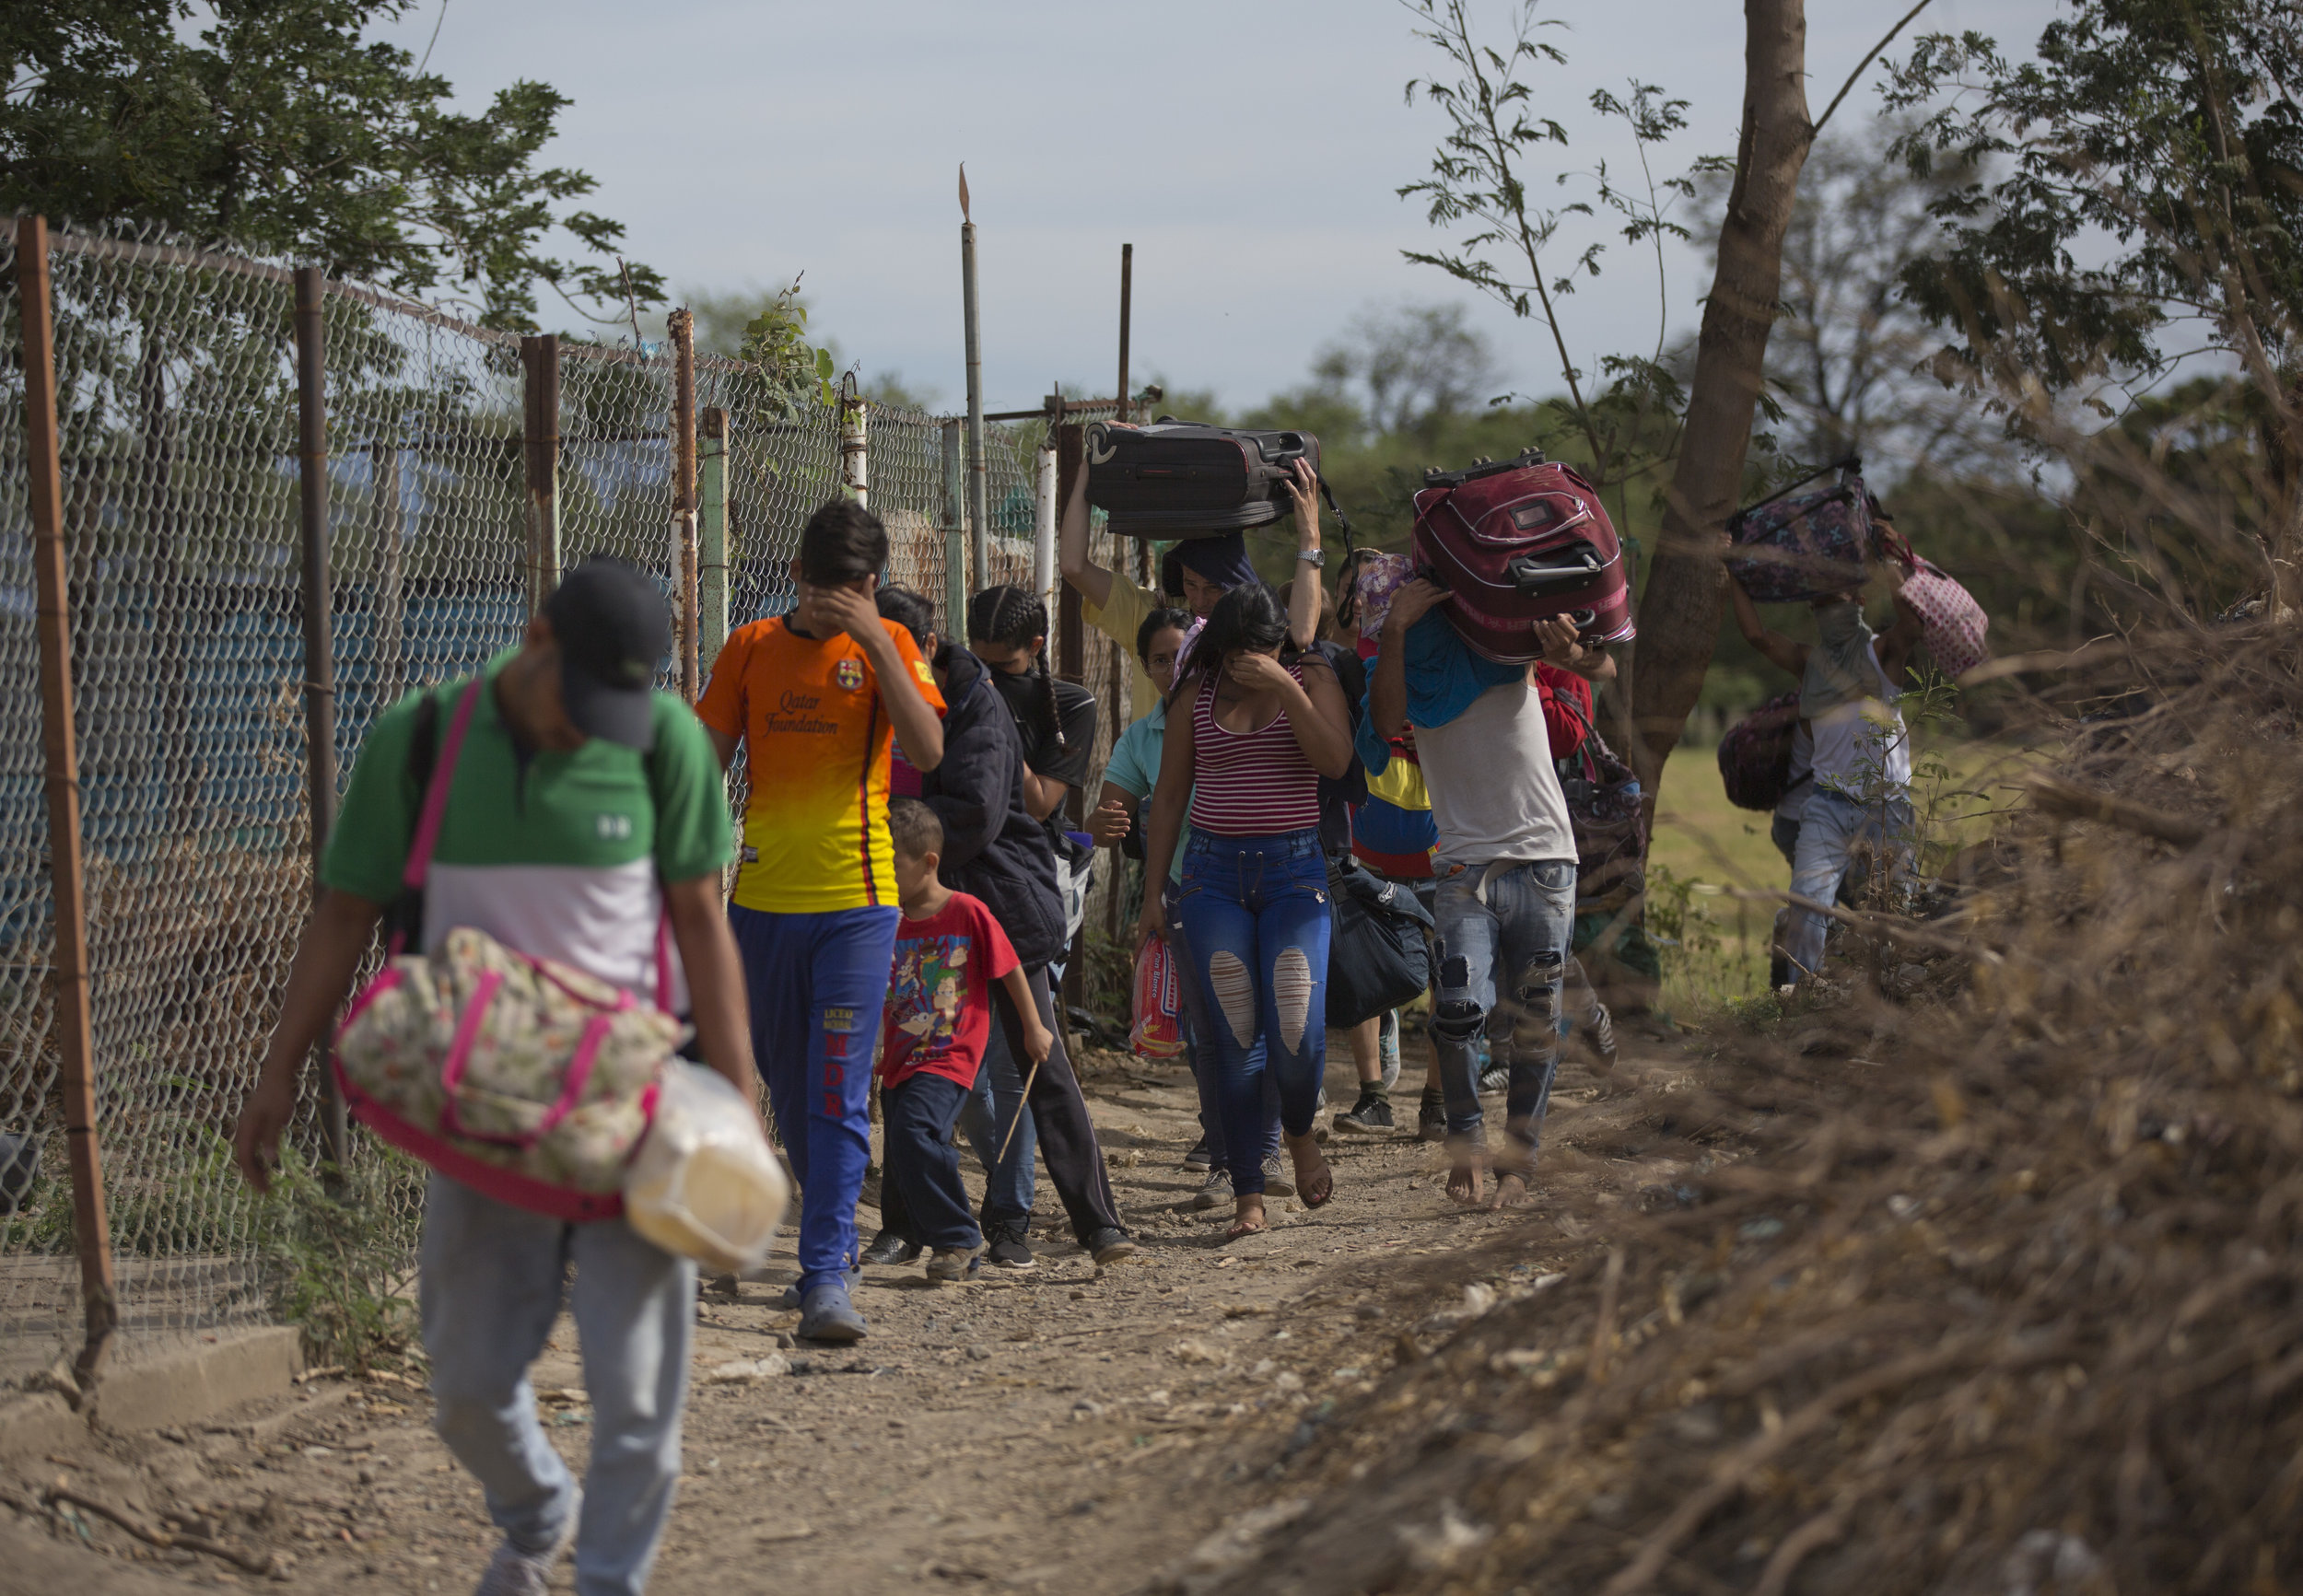 """Venezuelans illegally cross into Colombia, to Cucuta, along a path known as a """"trocha"""" on Aug. 31, 2018. (AP Photo/Ariana Cubillos)"""